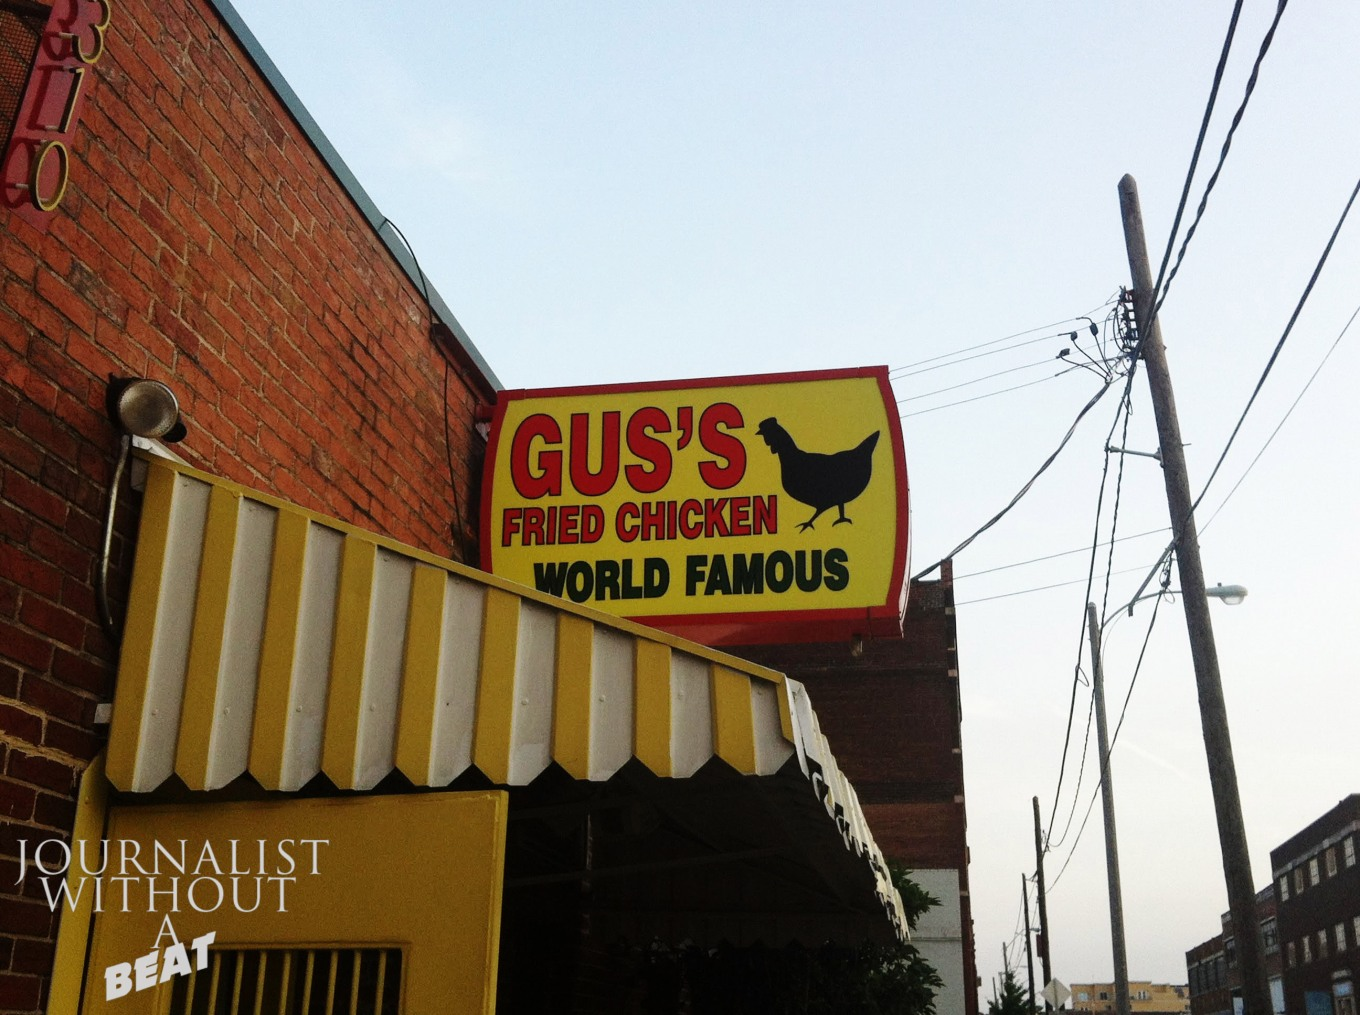 The original Gus's in Memphis, TN